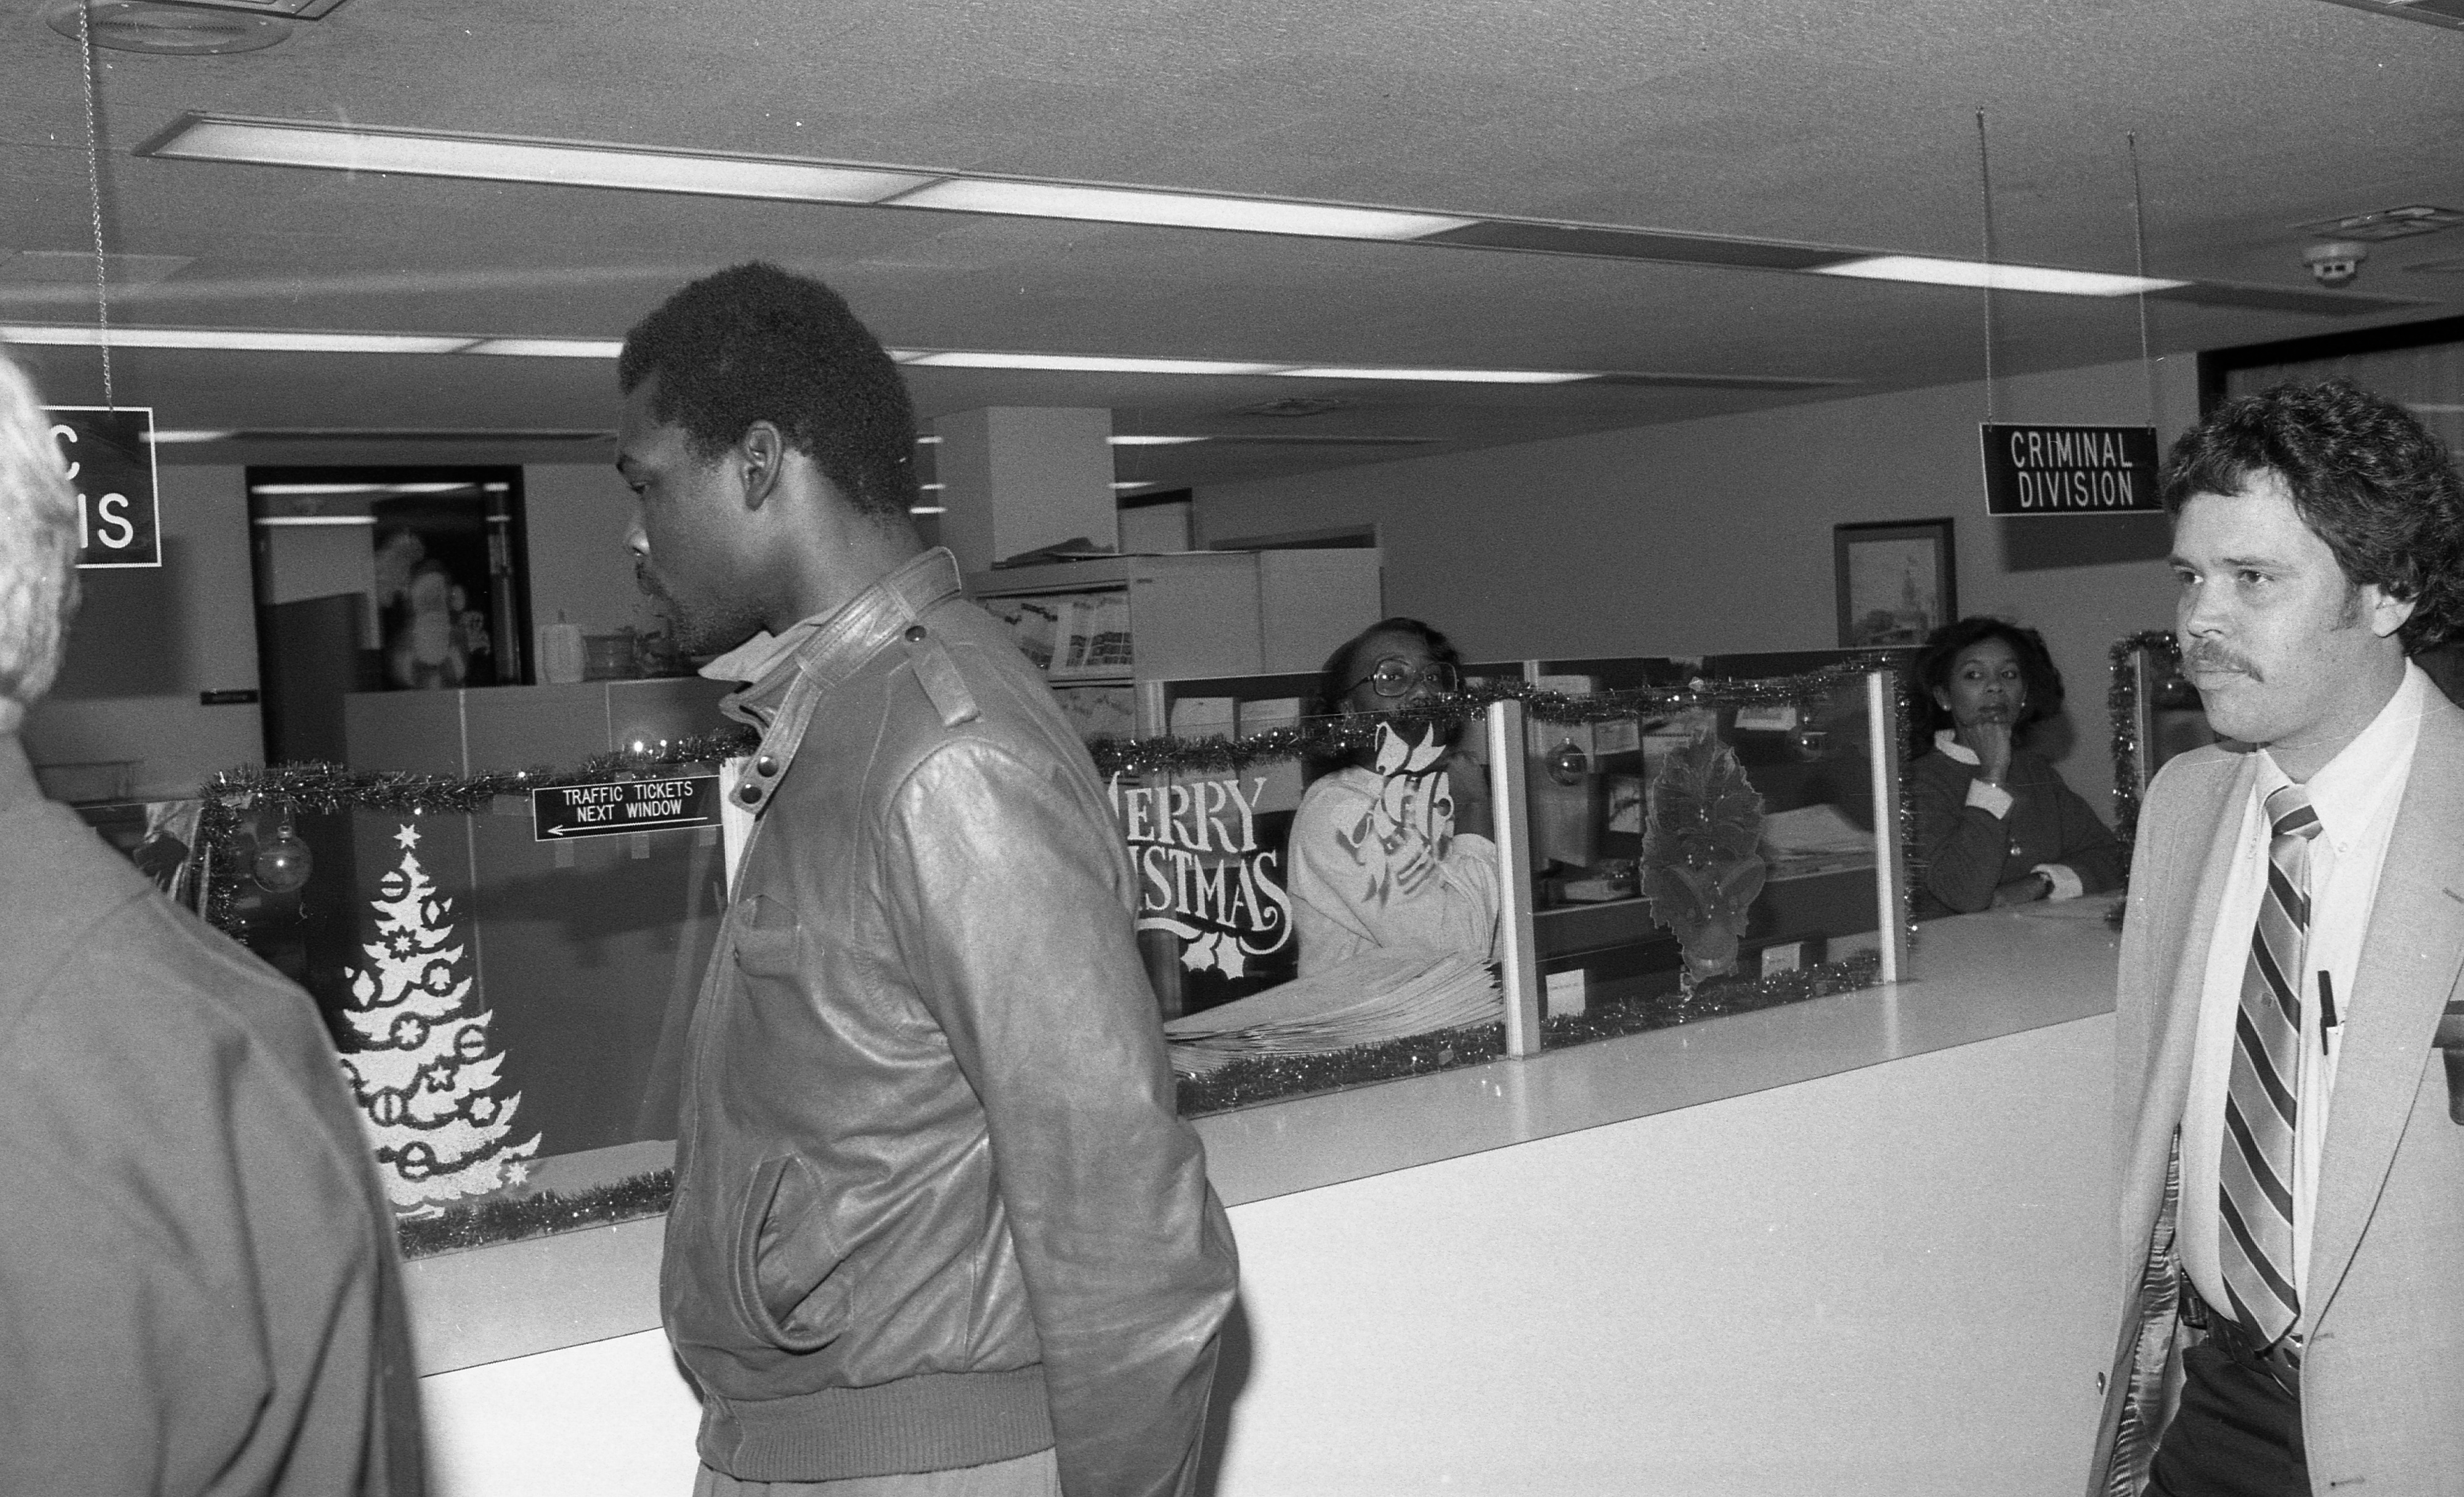 Suspect Robert Lee Williams Arraigned In 15th District Court In Brian Canter Homicide, December 1983 image